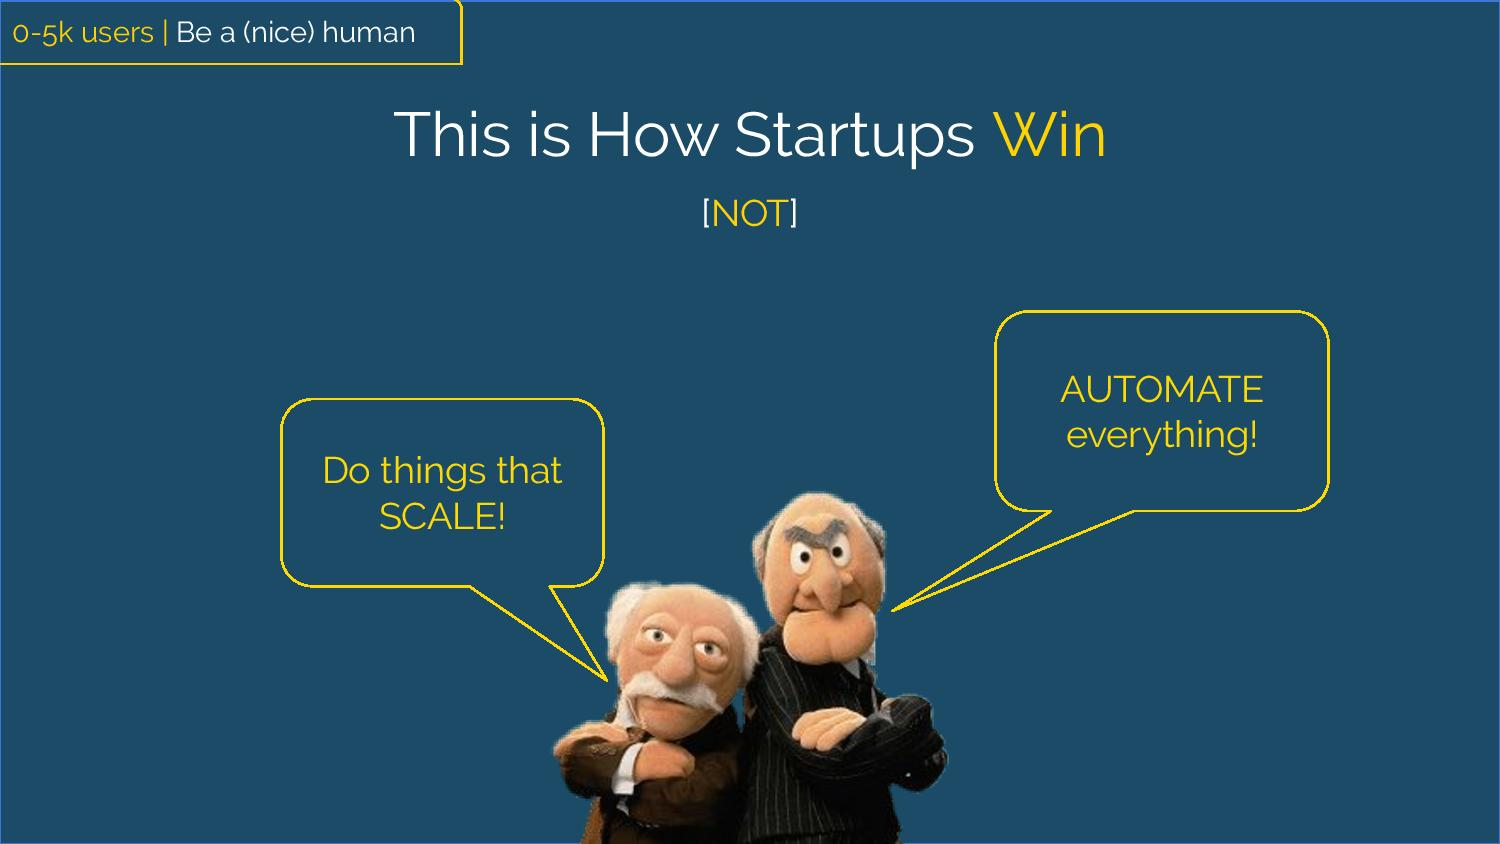 """This is how startups win (not)"" Two grumpy muppets saying ""Do things that scale"" and ""Automate everything"""